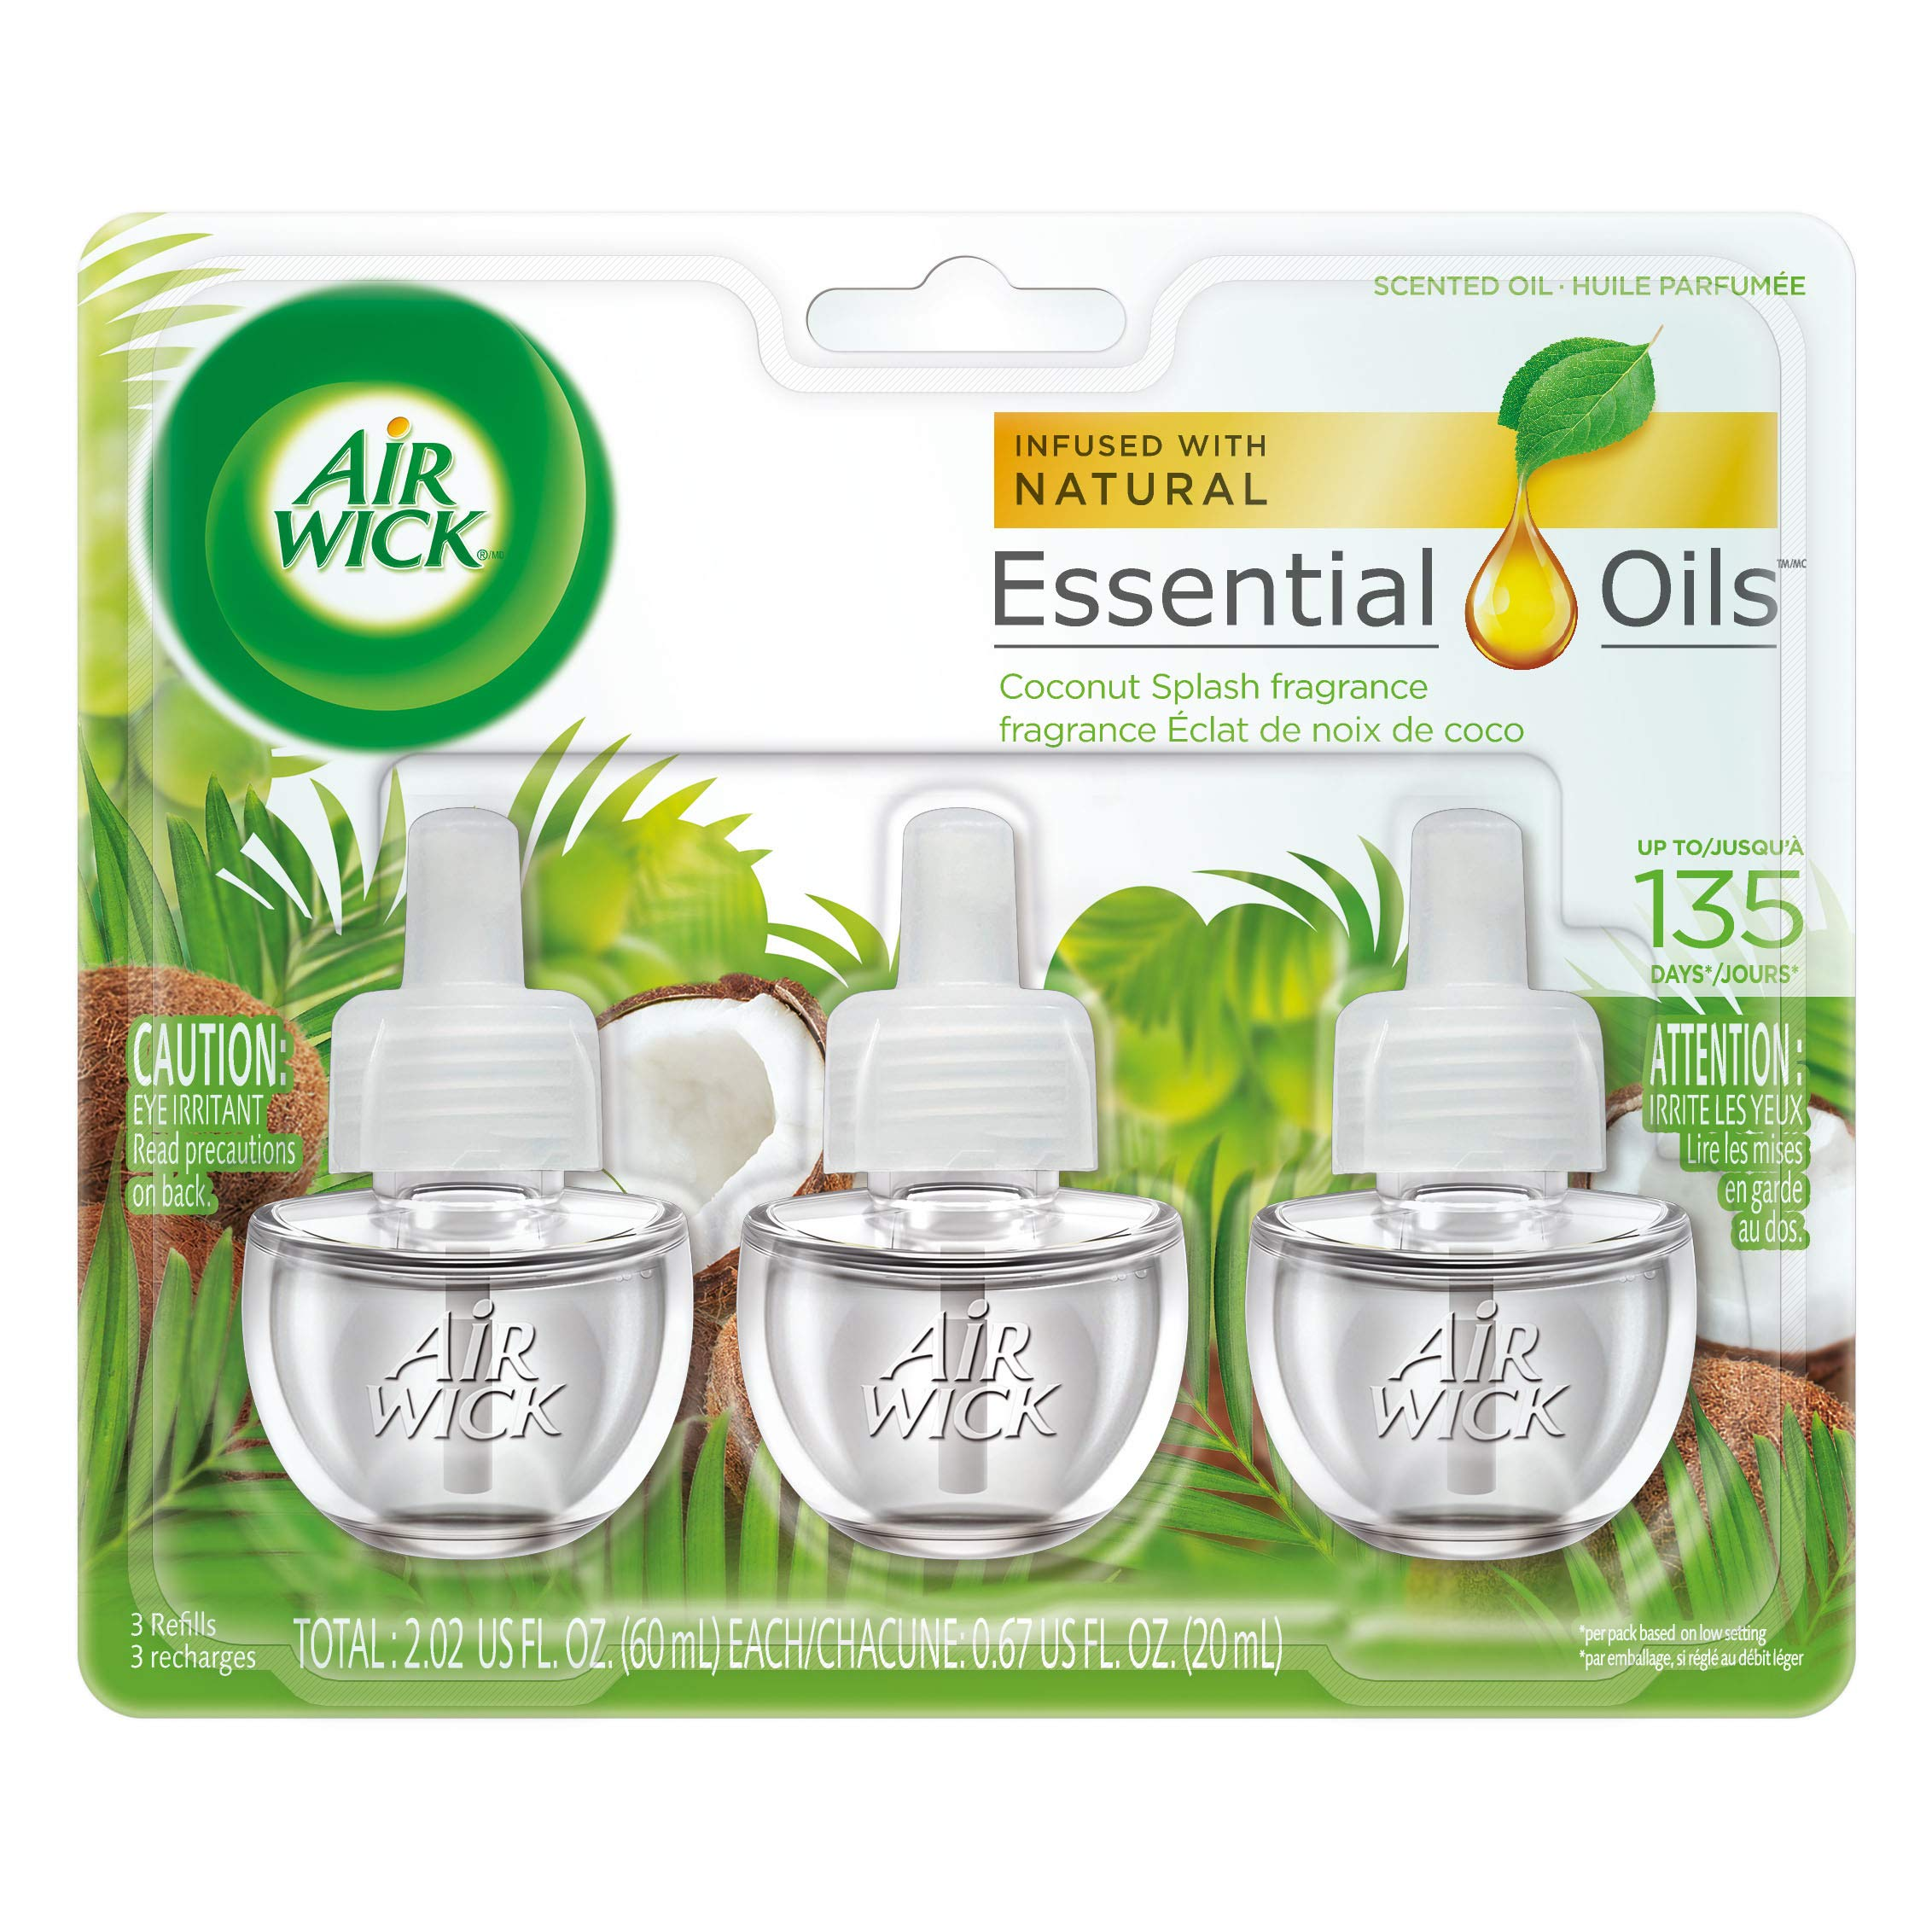 Air Wick Scented Oil Coconut Splash Fragrance, Triple Refills, 0.67oz ( Packs of 6)